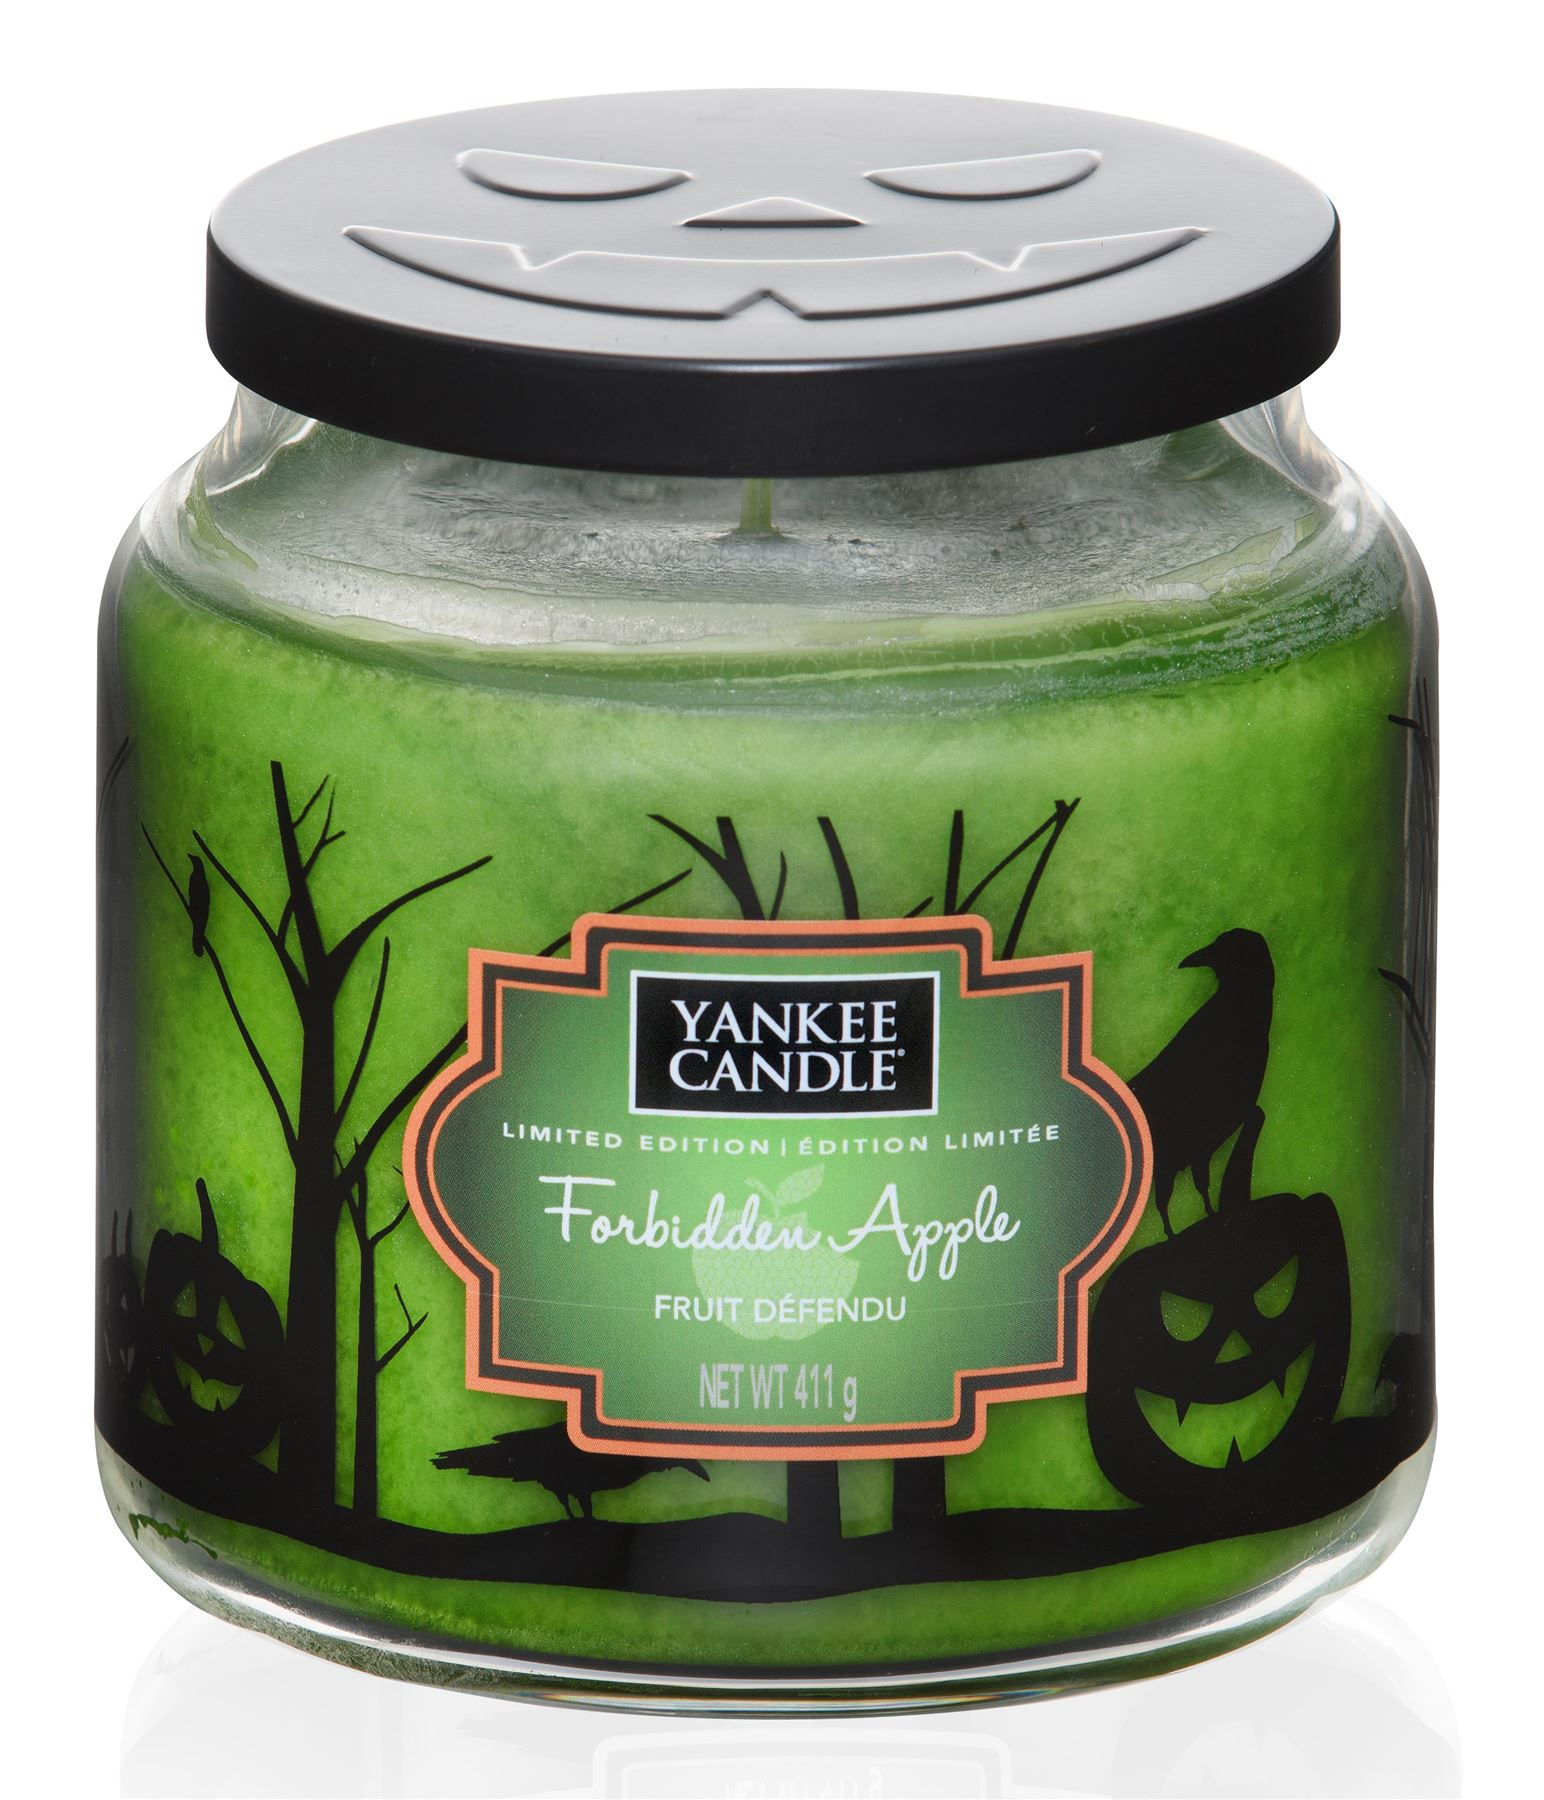 Yankee-Candle-Medium-Jar-Classic-Housewarmer-Including-New-2018-Scents